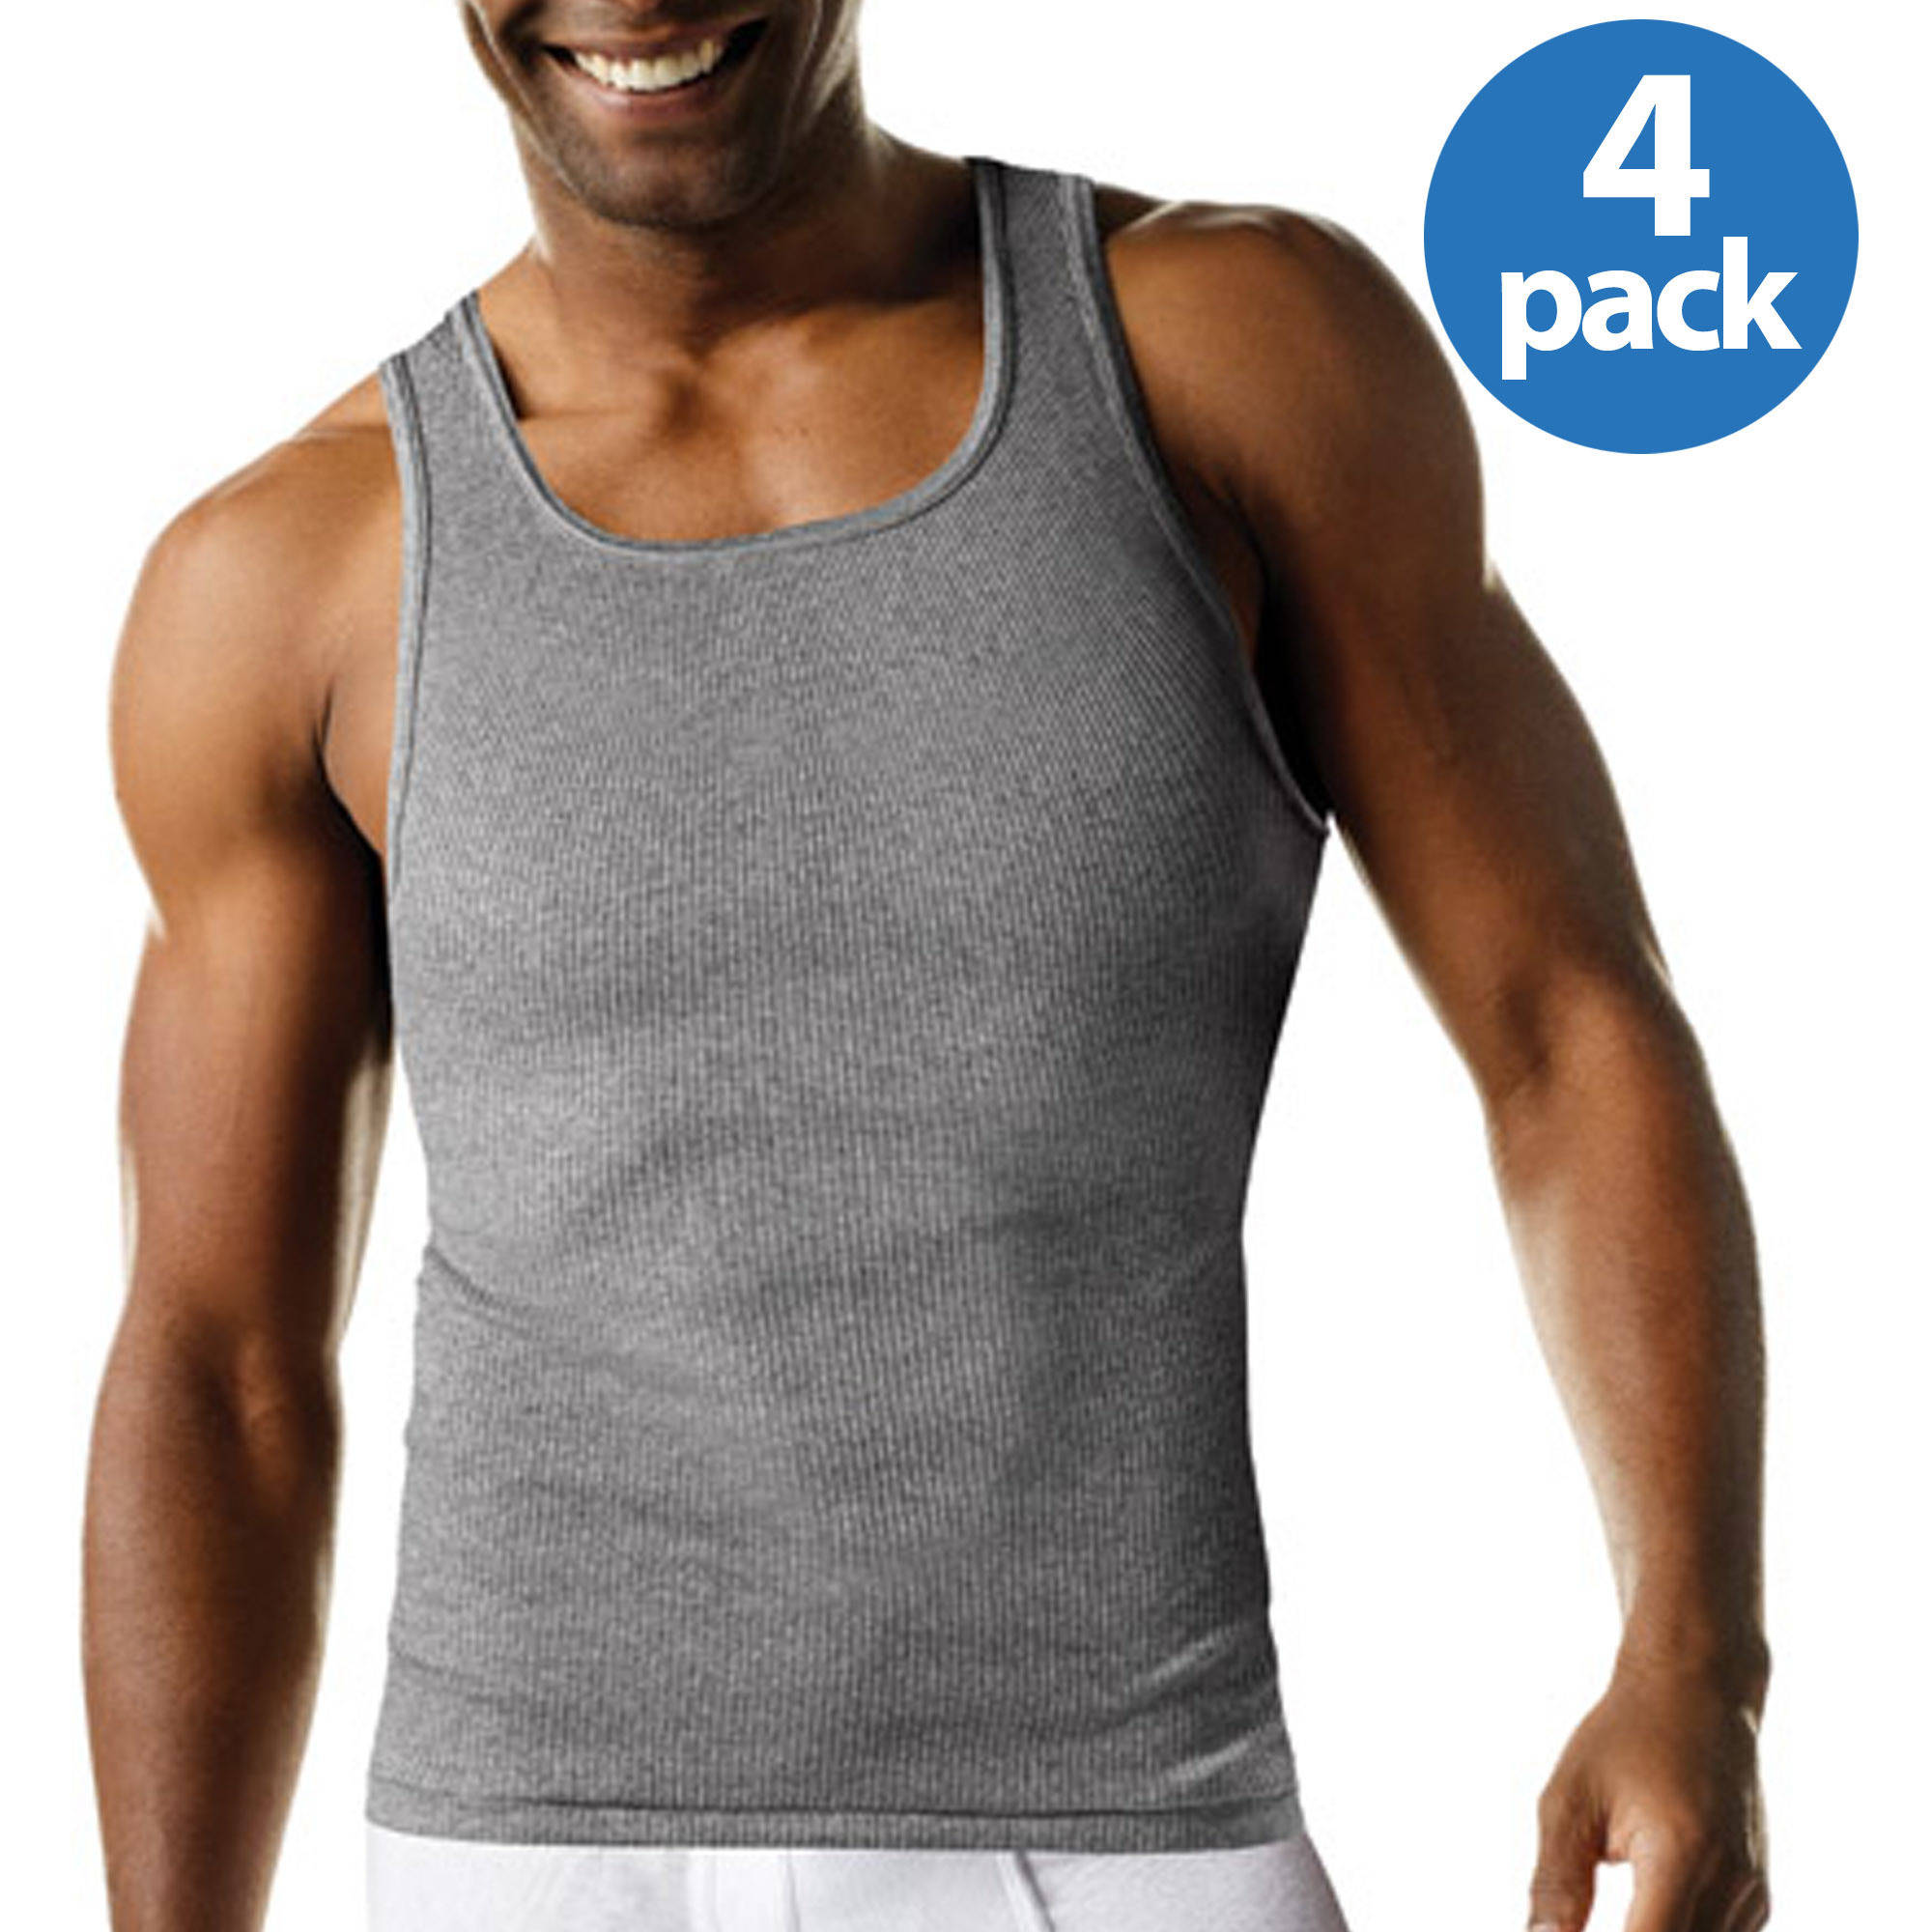 Hanes Men's FreshIQ ComfortSoft Dyed Tagless Tanks 4-Pack